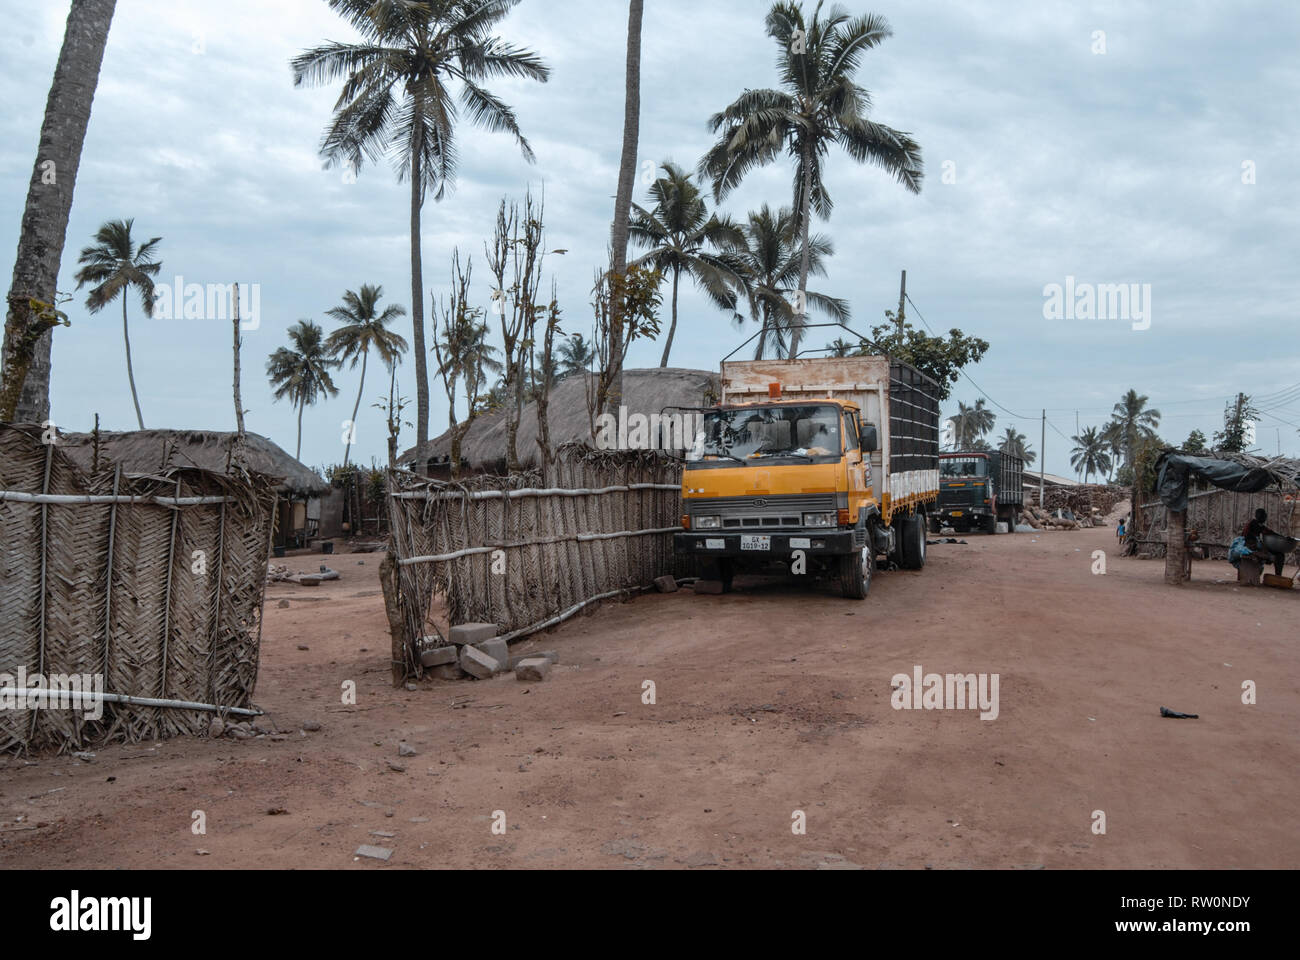 A yellow truck parked at a street of a suburb of tropical town of Elmina, Ghana - Stock Image